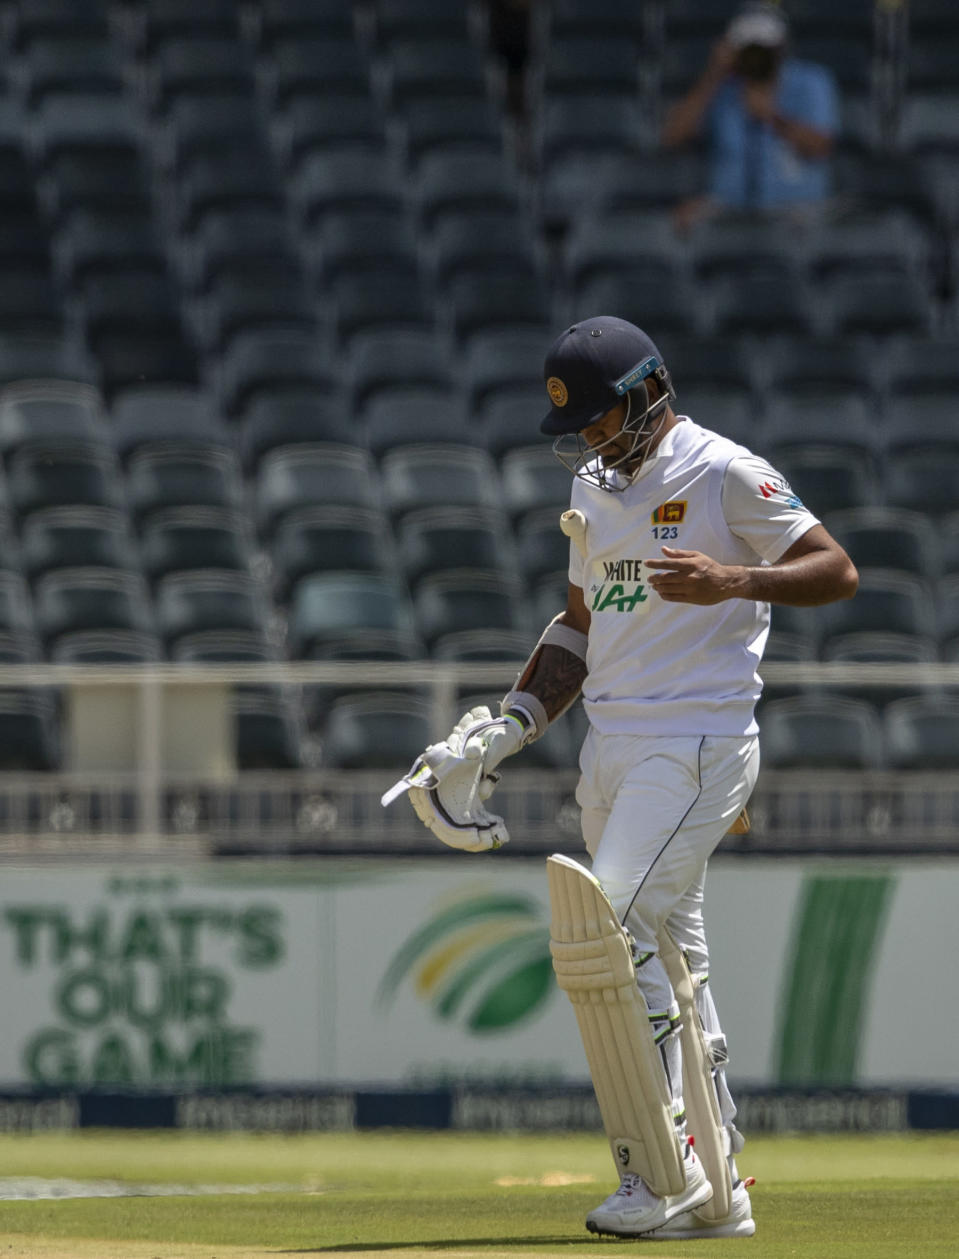 Sri Lanka's captain Dimuth Karunaratne leaves the field after being dismissed by South Africa's bowler Anrich Nortje during the 2nd Test cricket match between South Africa and Sri Lanka in Johannesburg, South Africa, Sunday, Jan. 3, 2021. (AP Photo/Themba Hadebe)[